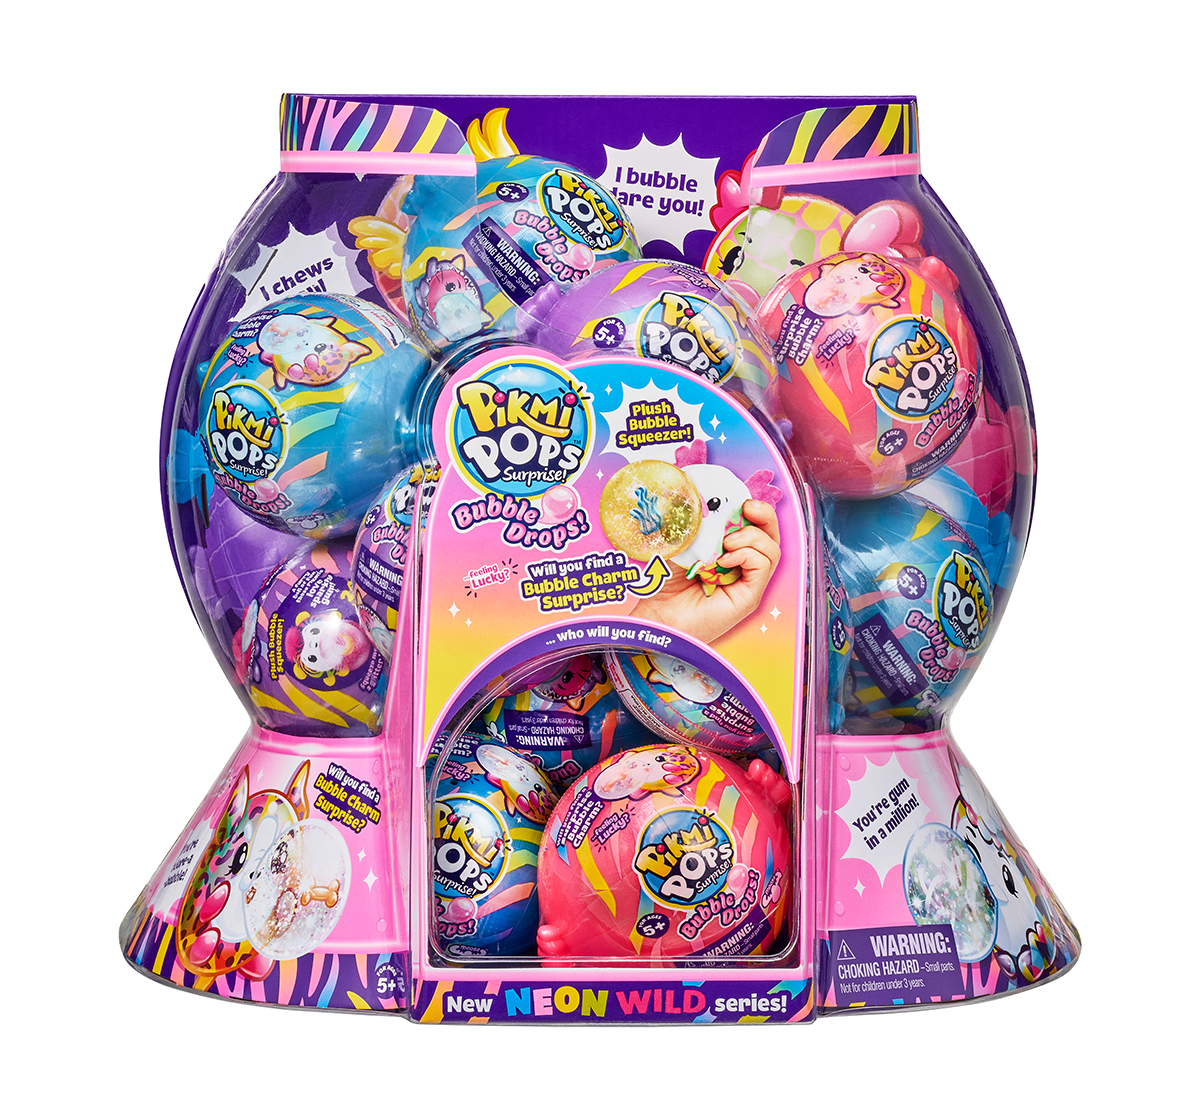 Pikmi Pops | Pikmi Pops Bubble Drop Neon Wild Single Pack Interactive Soft Toys for Girls age 5Y+ - 8.5 Cm